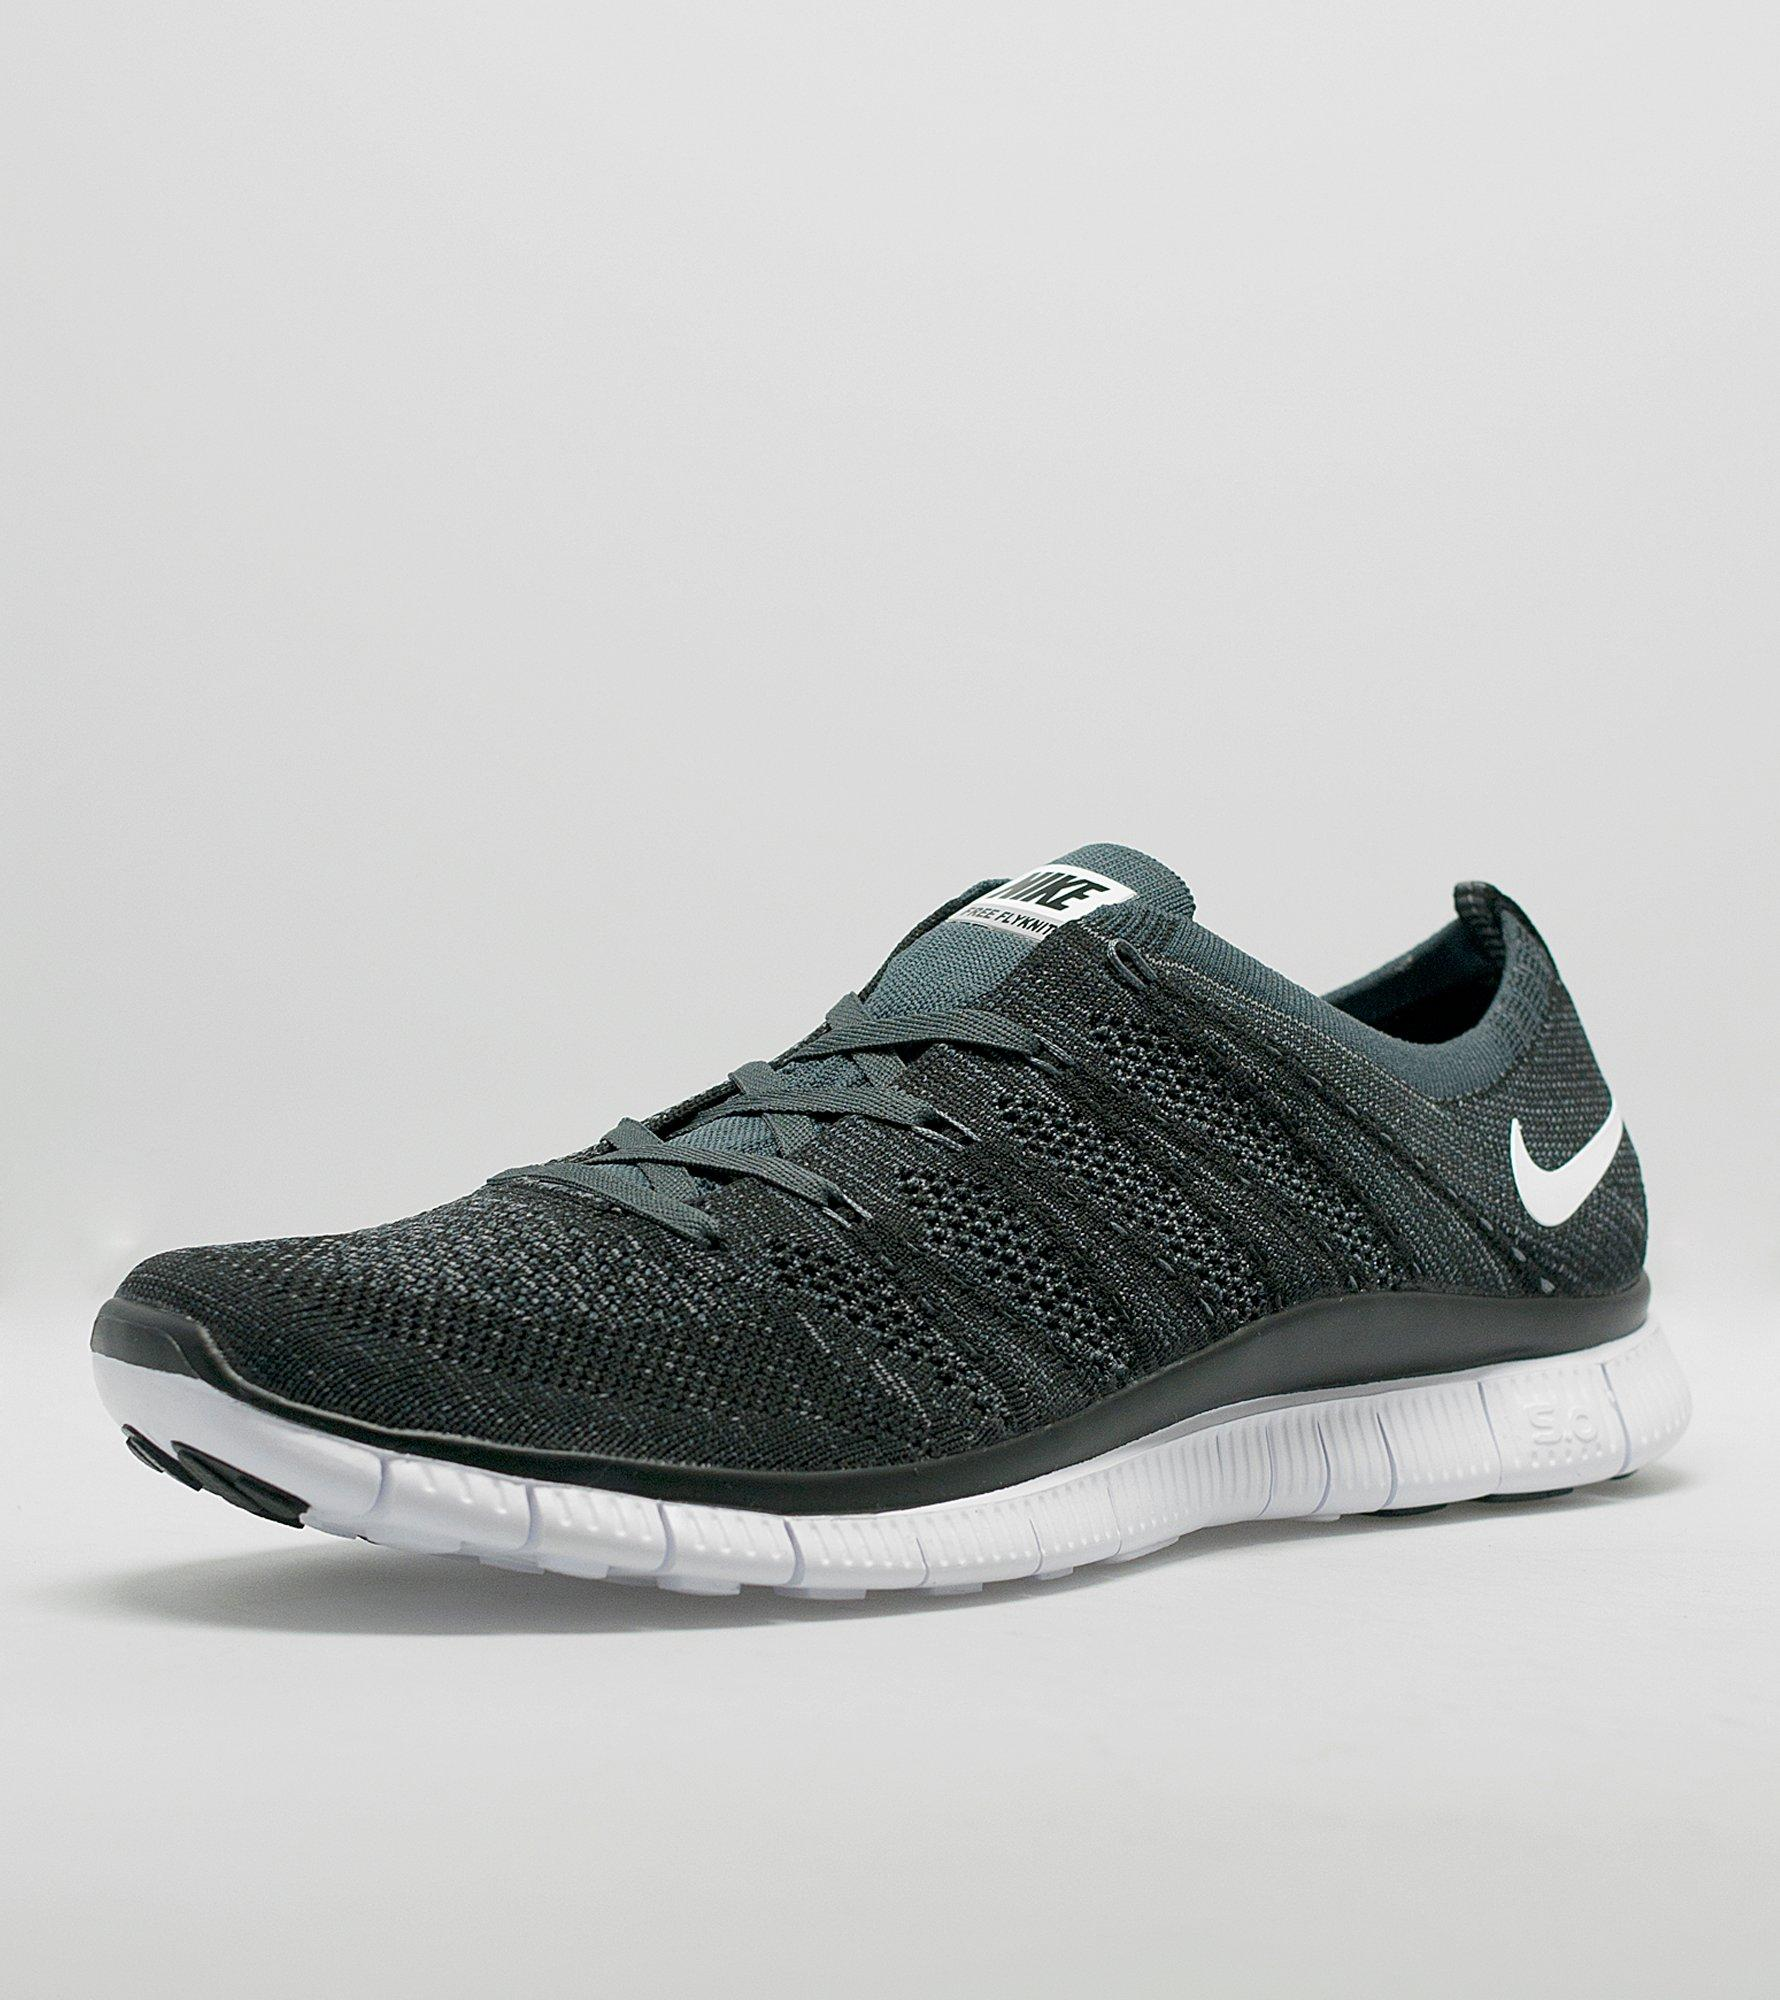 Lost White Card Nsw Nike Free Flyknit Nsw Size